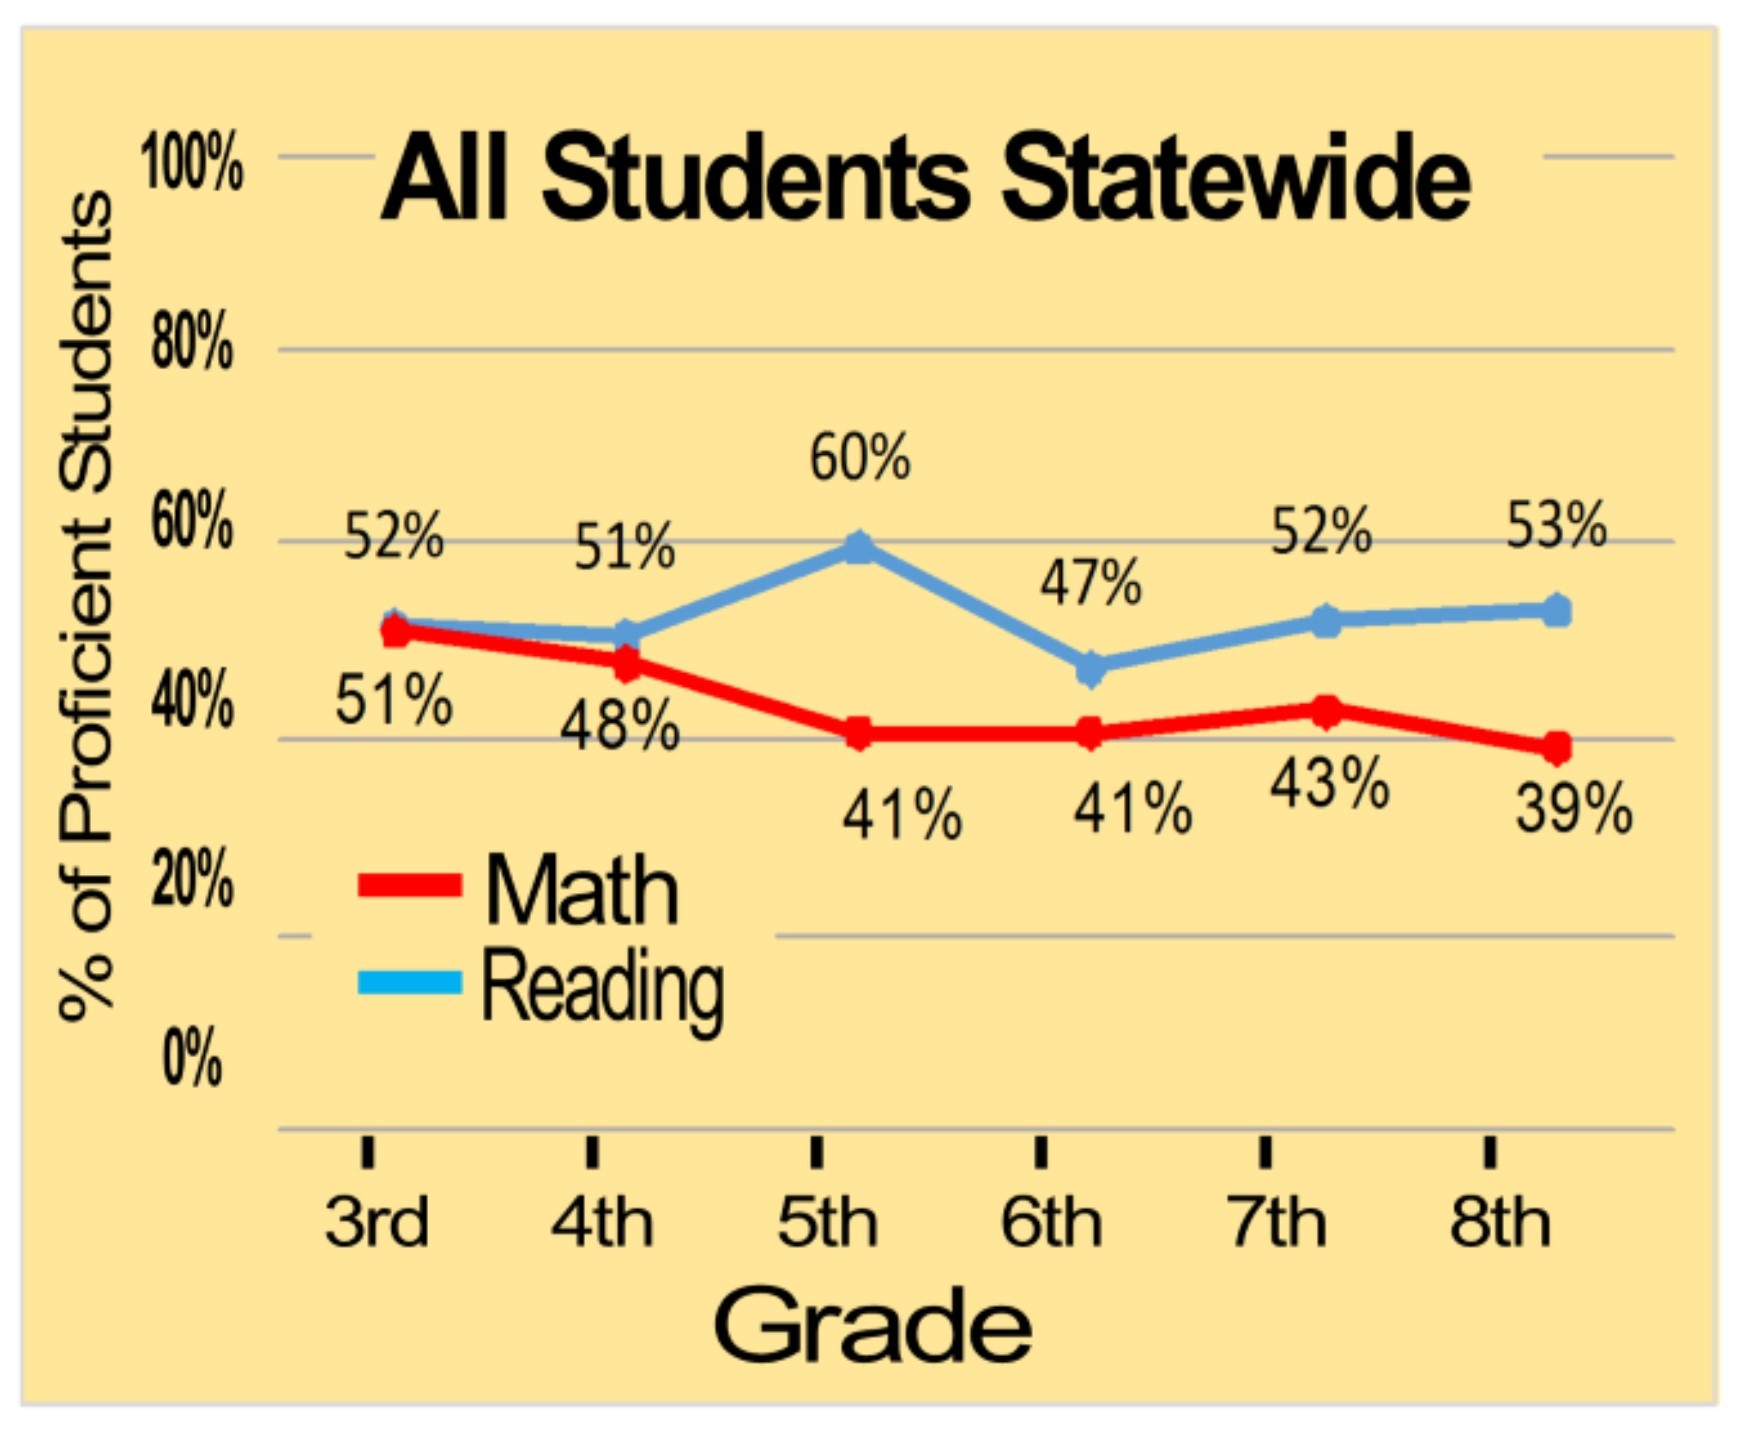 2010-2014 WI Knowledge and Concepts Exam Results for Wisconsin Public Schools Source: Wisconsin Dept. of Public Instruction website